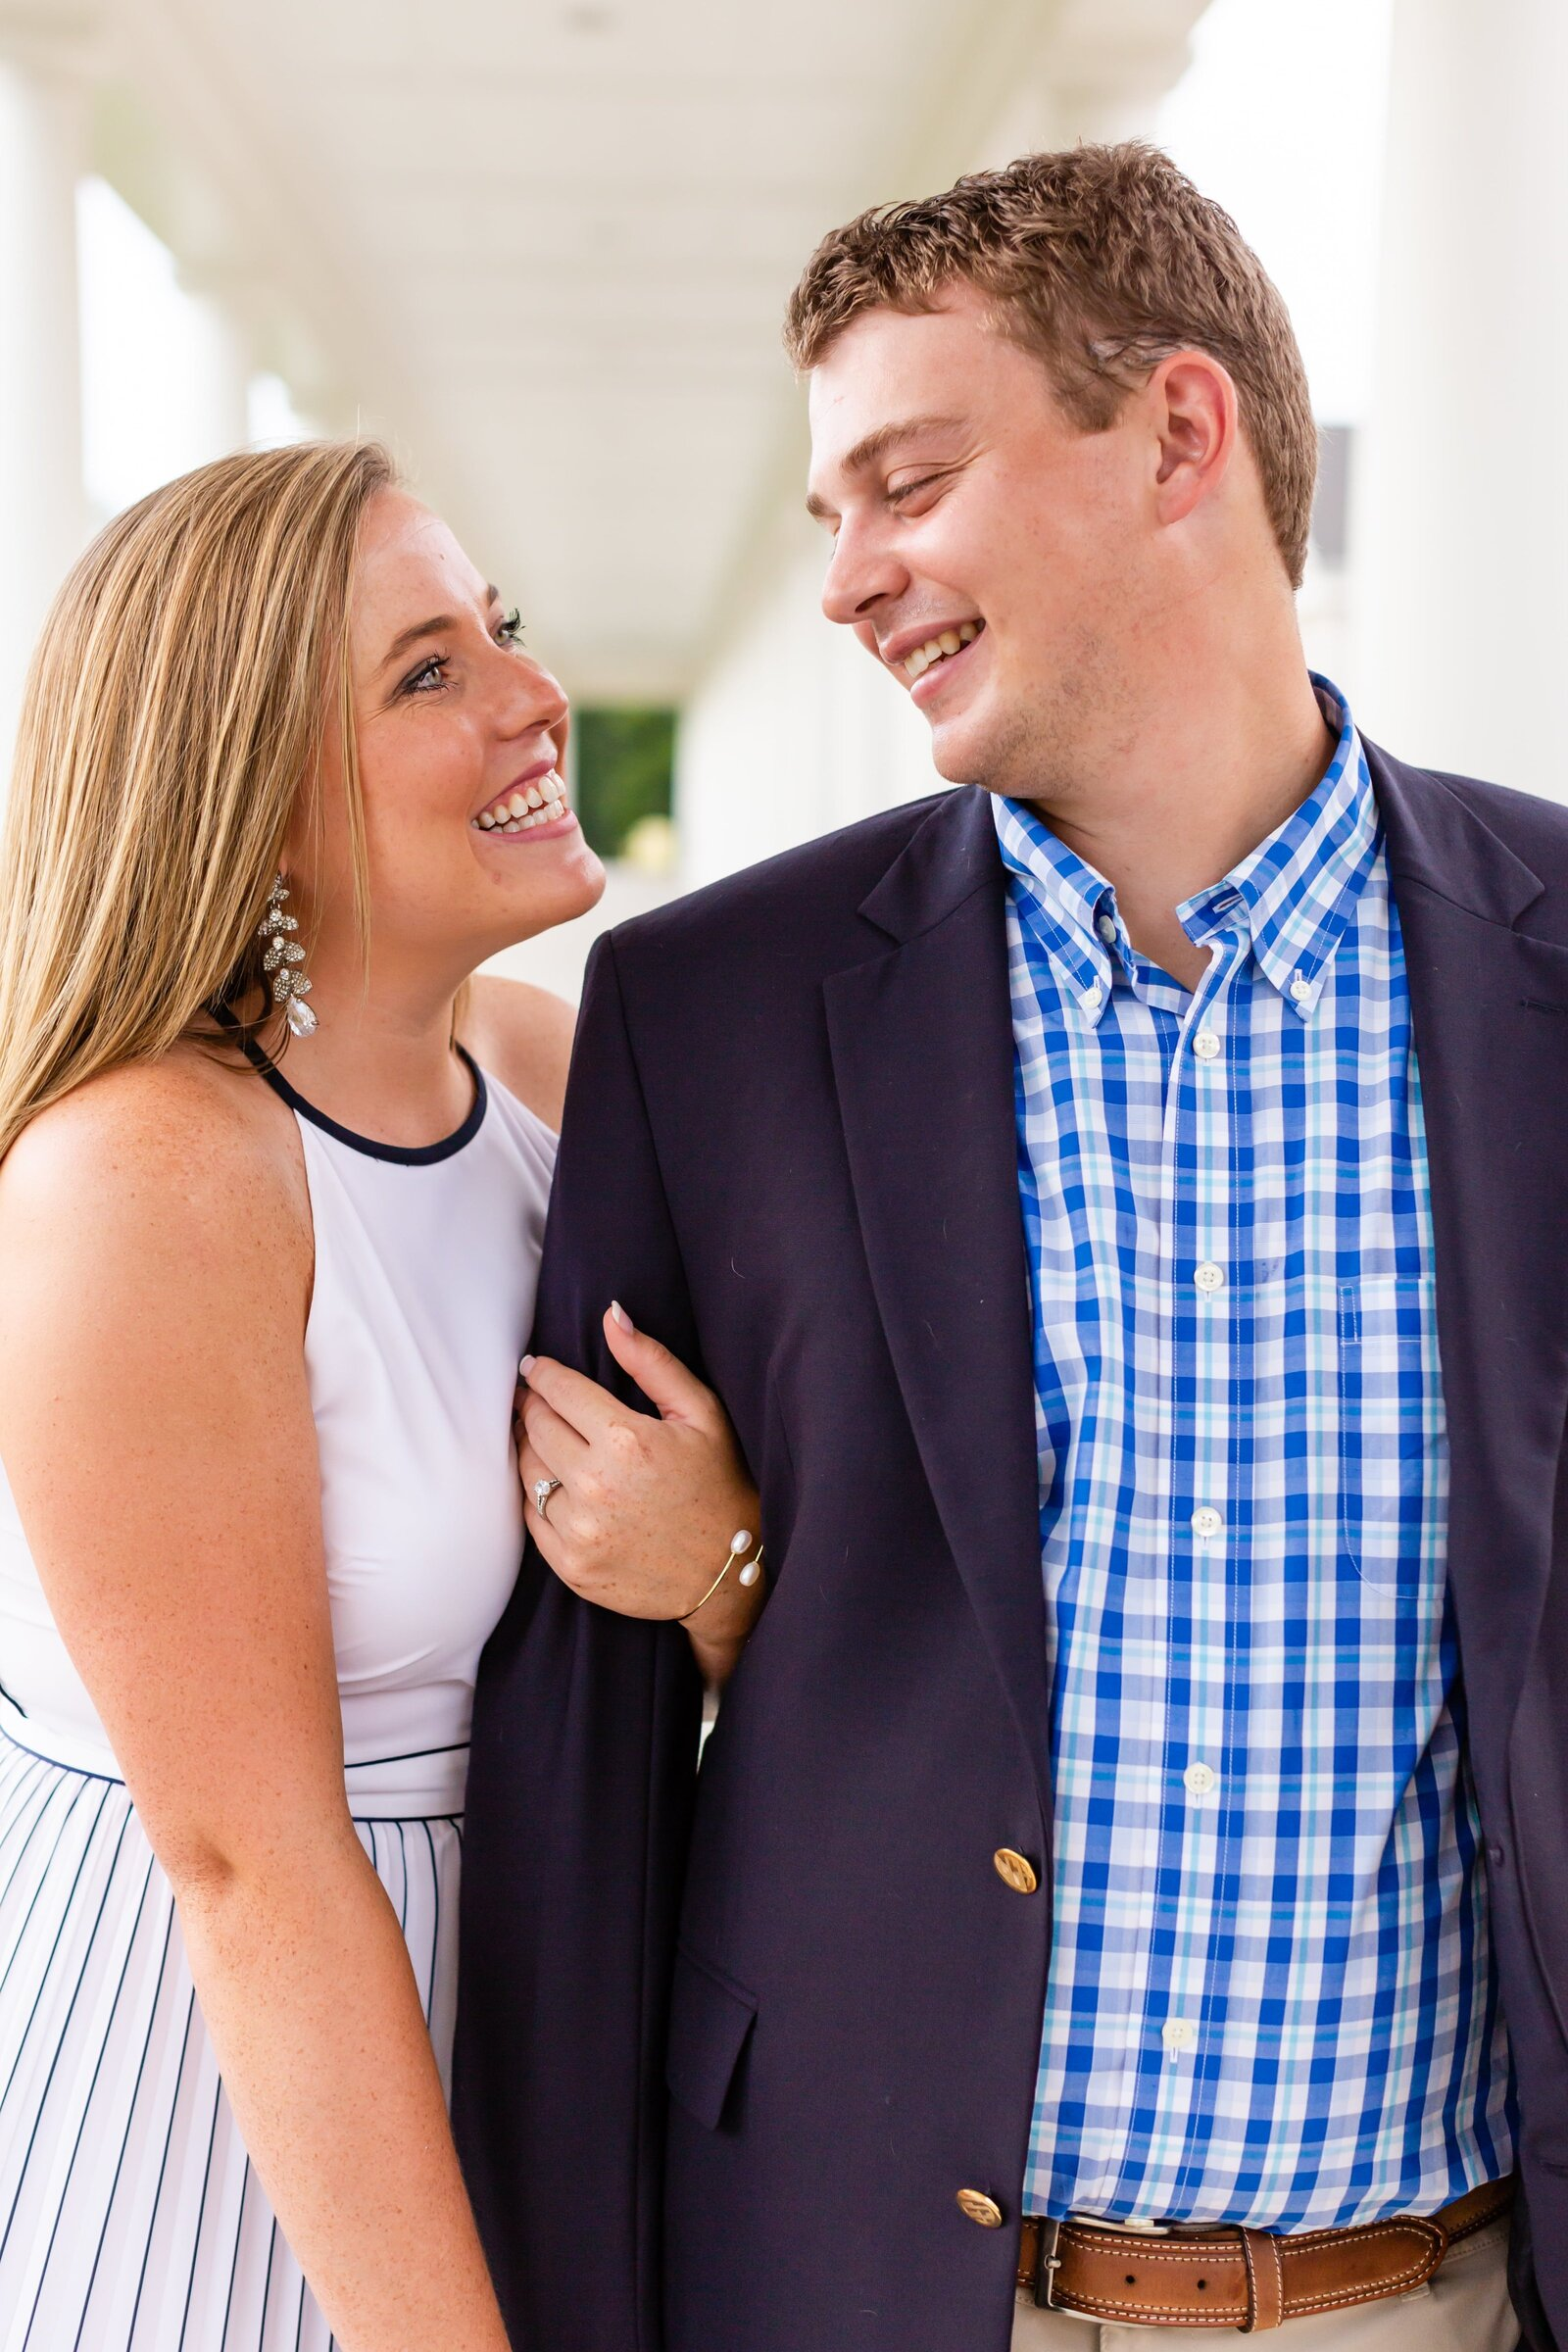 H & H Greenville engagement session by Charleston wedding photographer-6-min